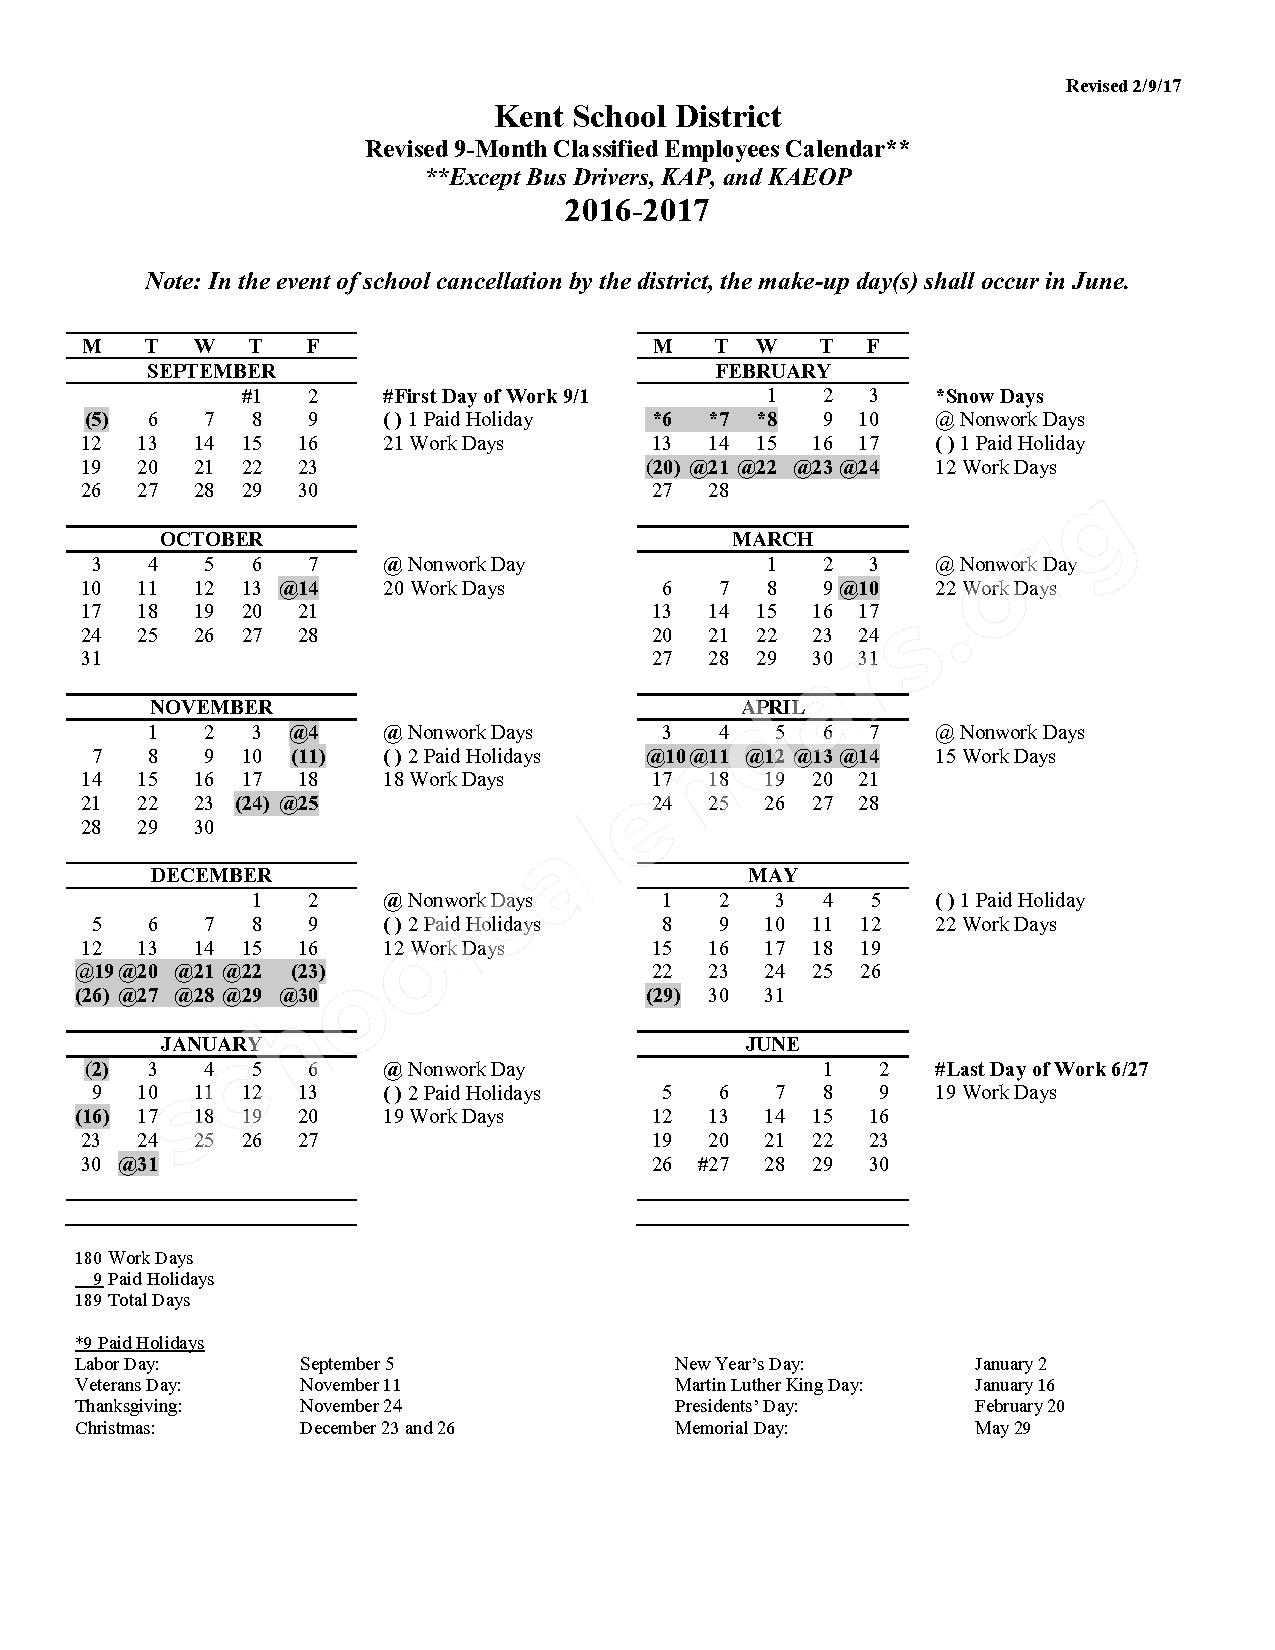 2016 - 2017 9-Month Classified Employees Calendar (Revised) – Meadow Ridge Elementary School – page 1